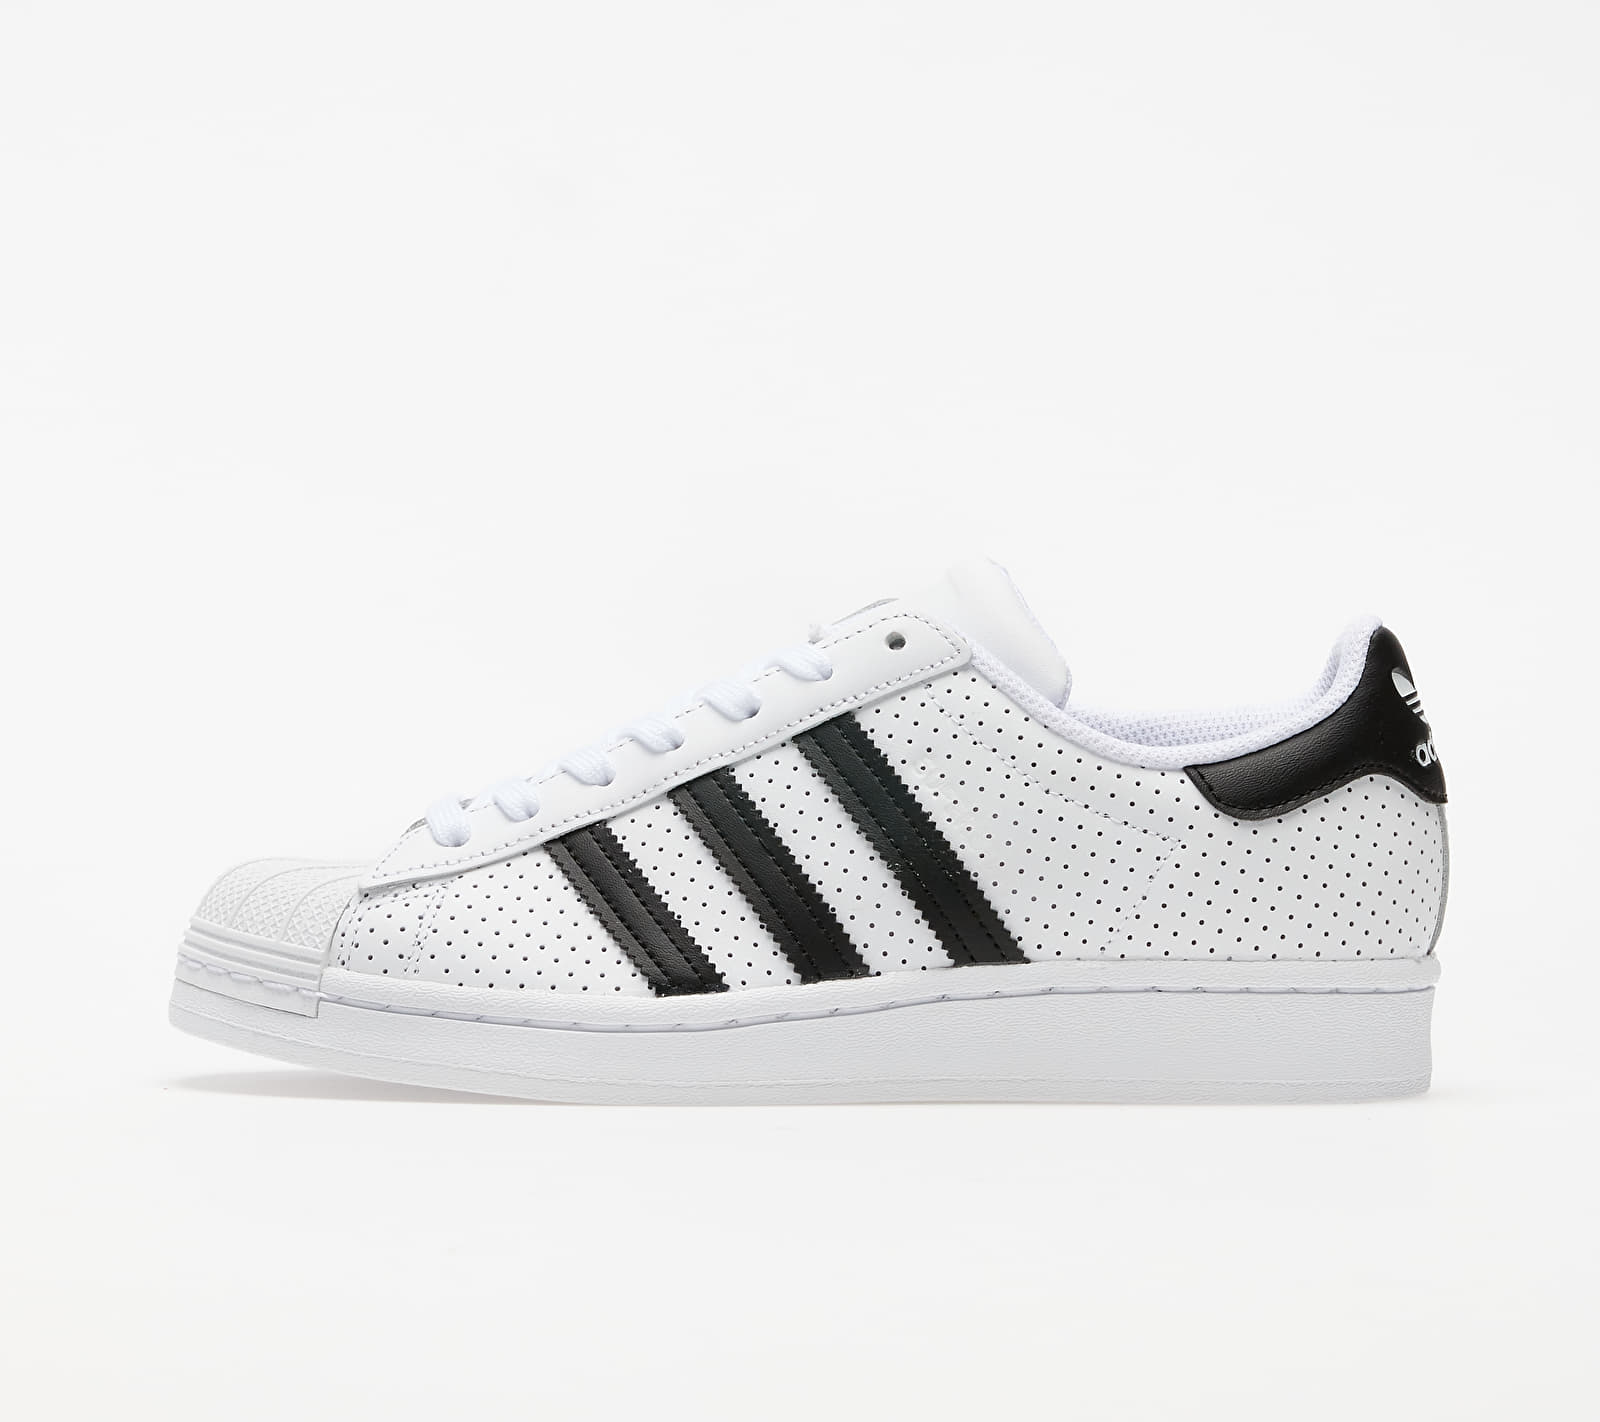 adidas Superstar W Ftw White/ Core Black/ Ftw White EUR 38